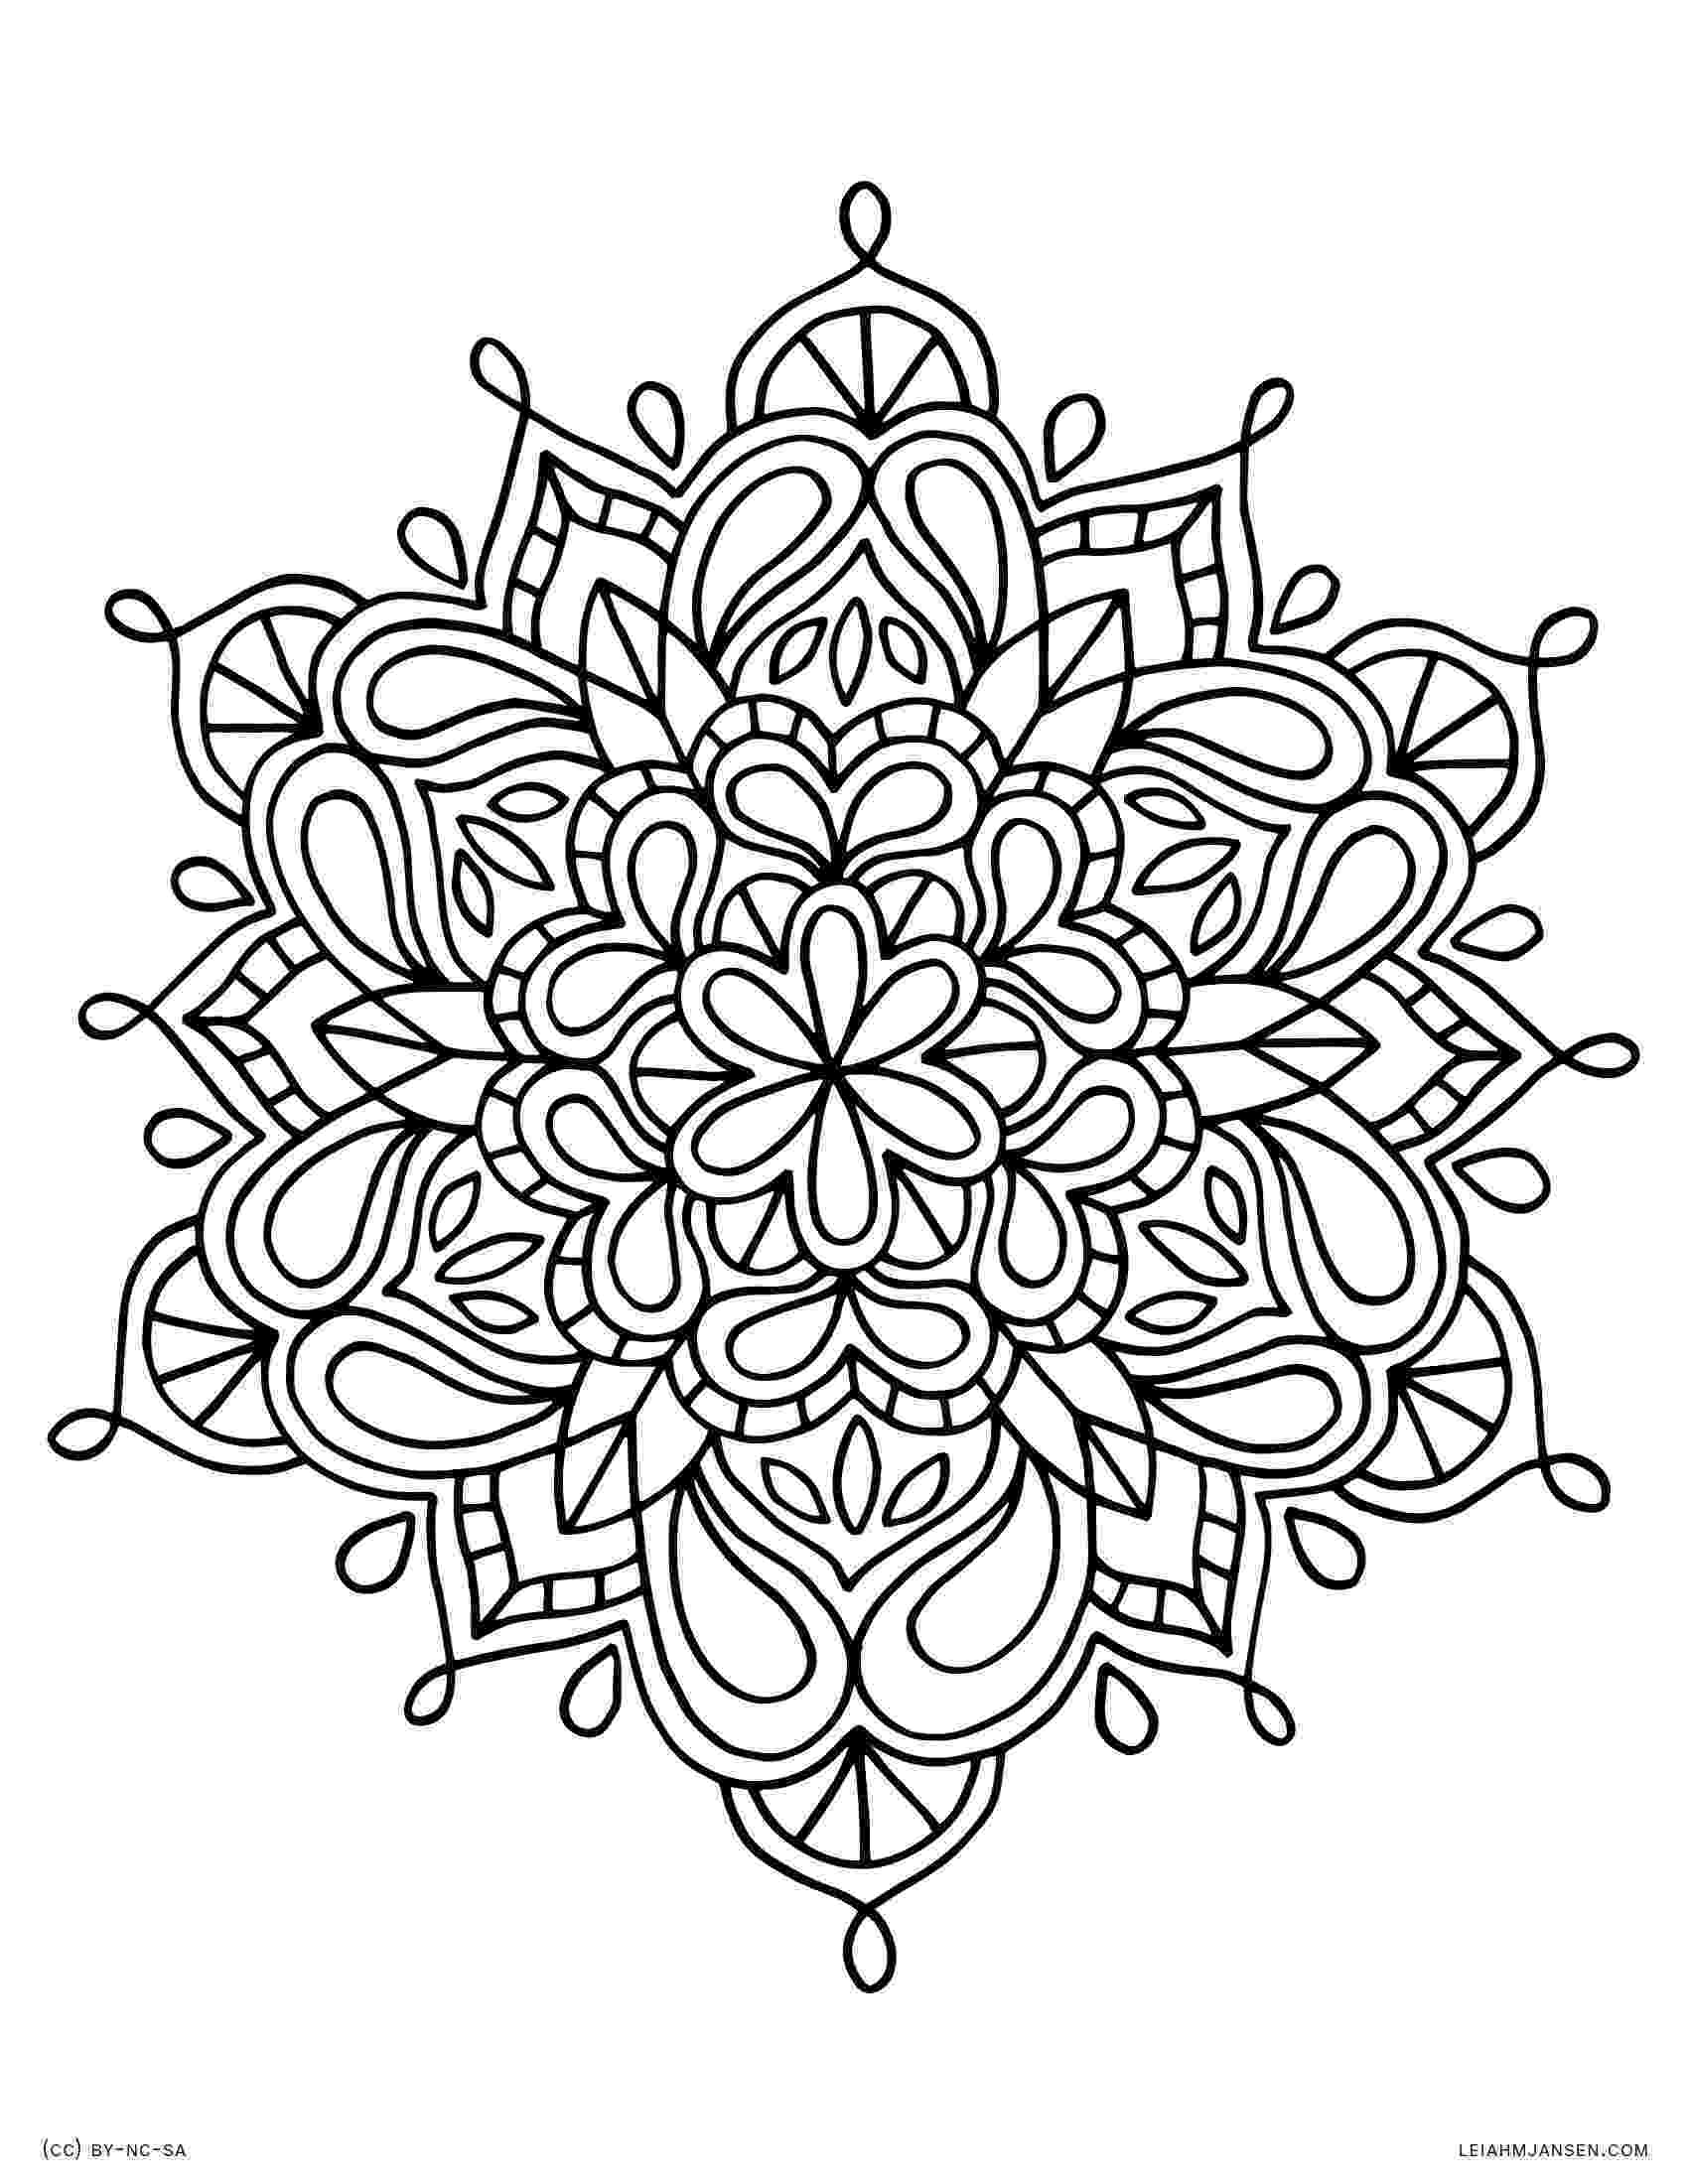 adult mandala coloring pages free printable mandala coloring pages for adults best adult mandala pages coloring